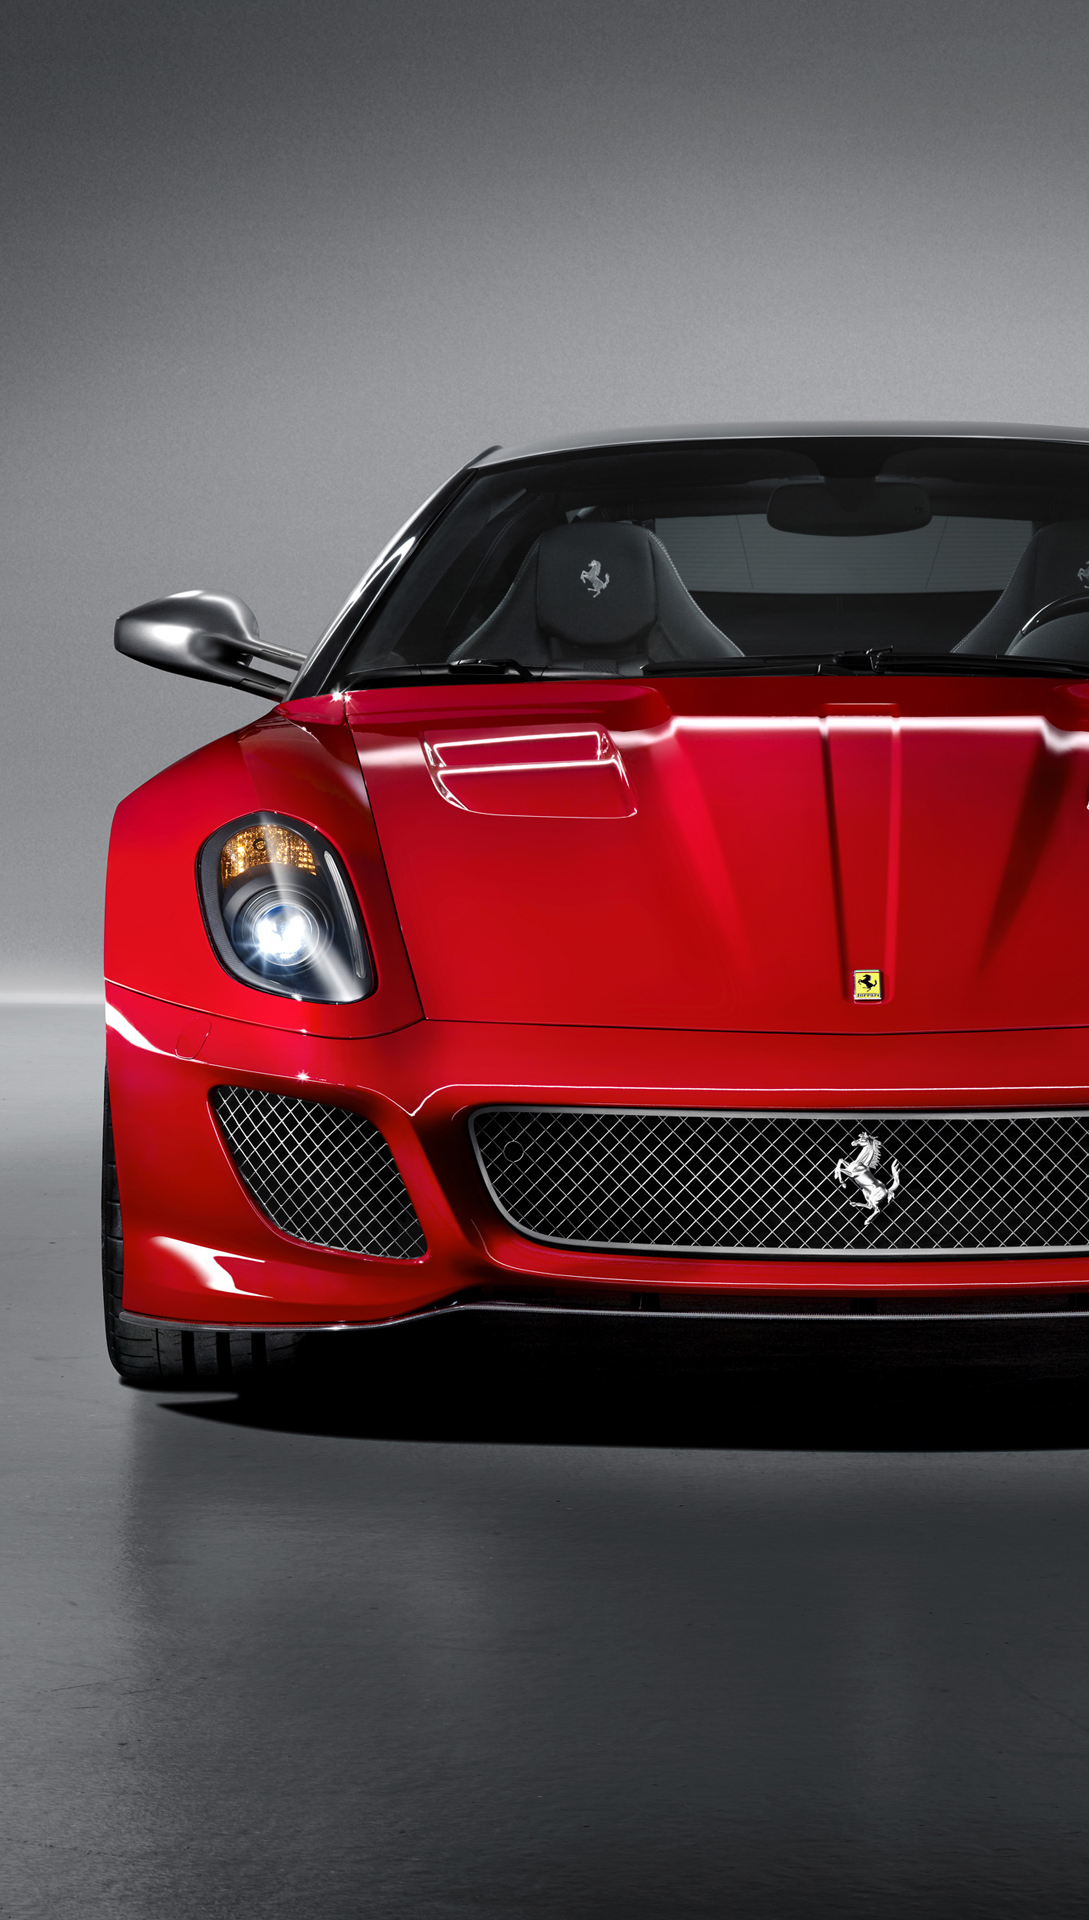 Ferrari Best Htc One Wallpapers Free And Easy To Download